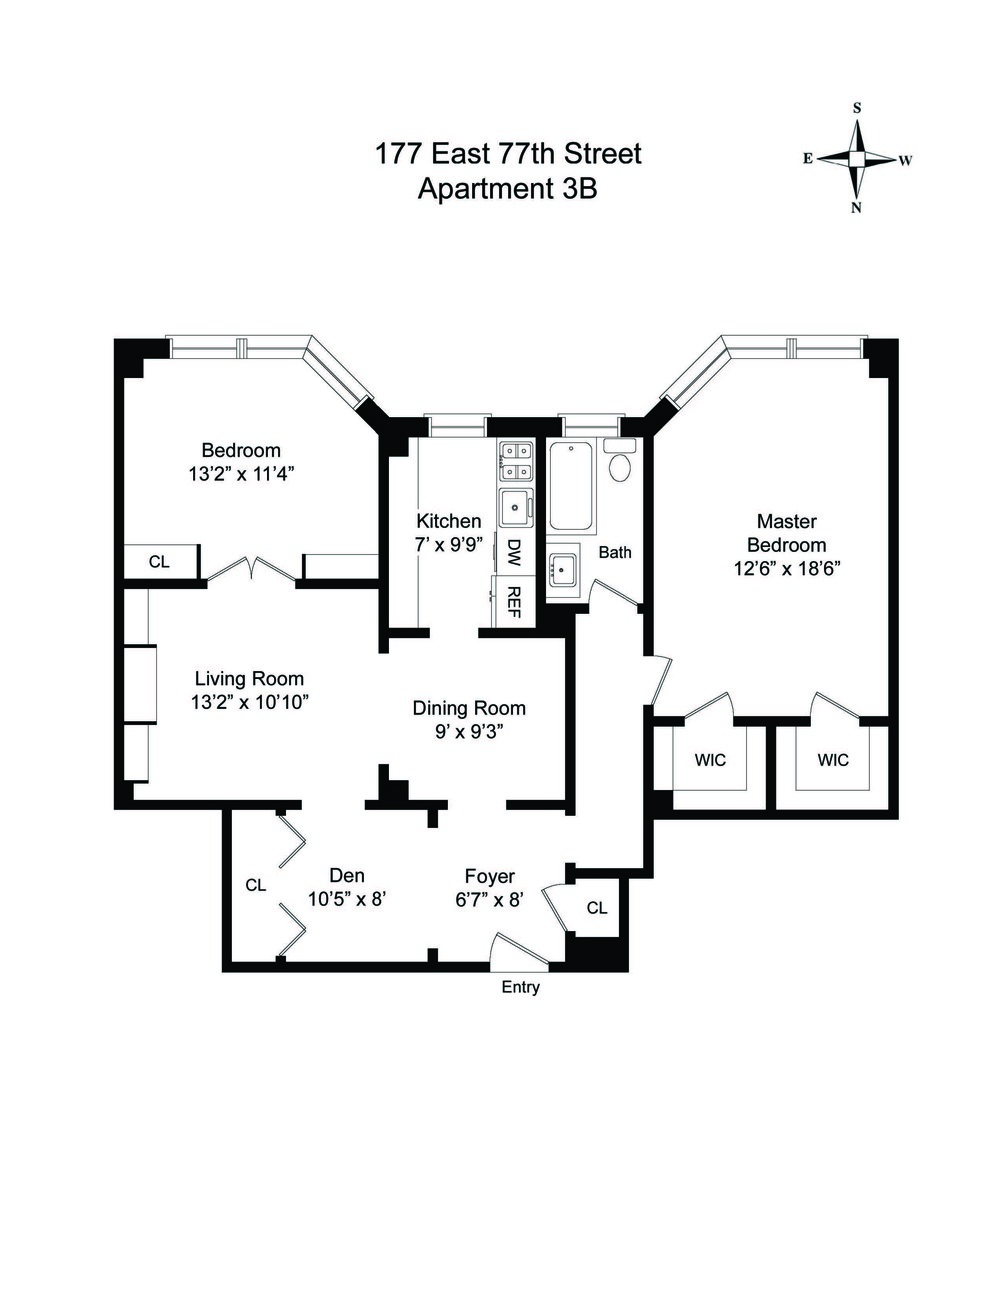 Floor Plan - 177 East 77th Street 3B.jpg